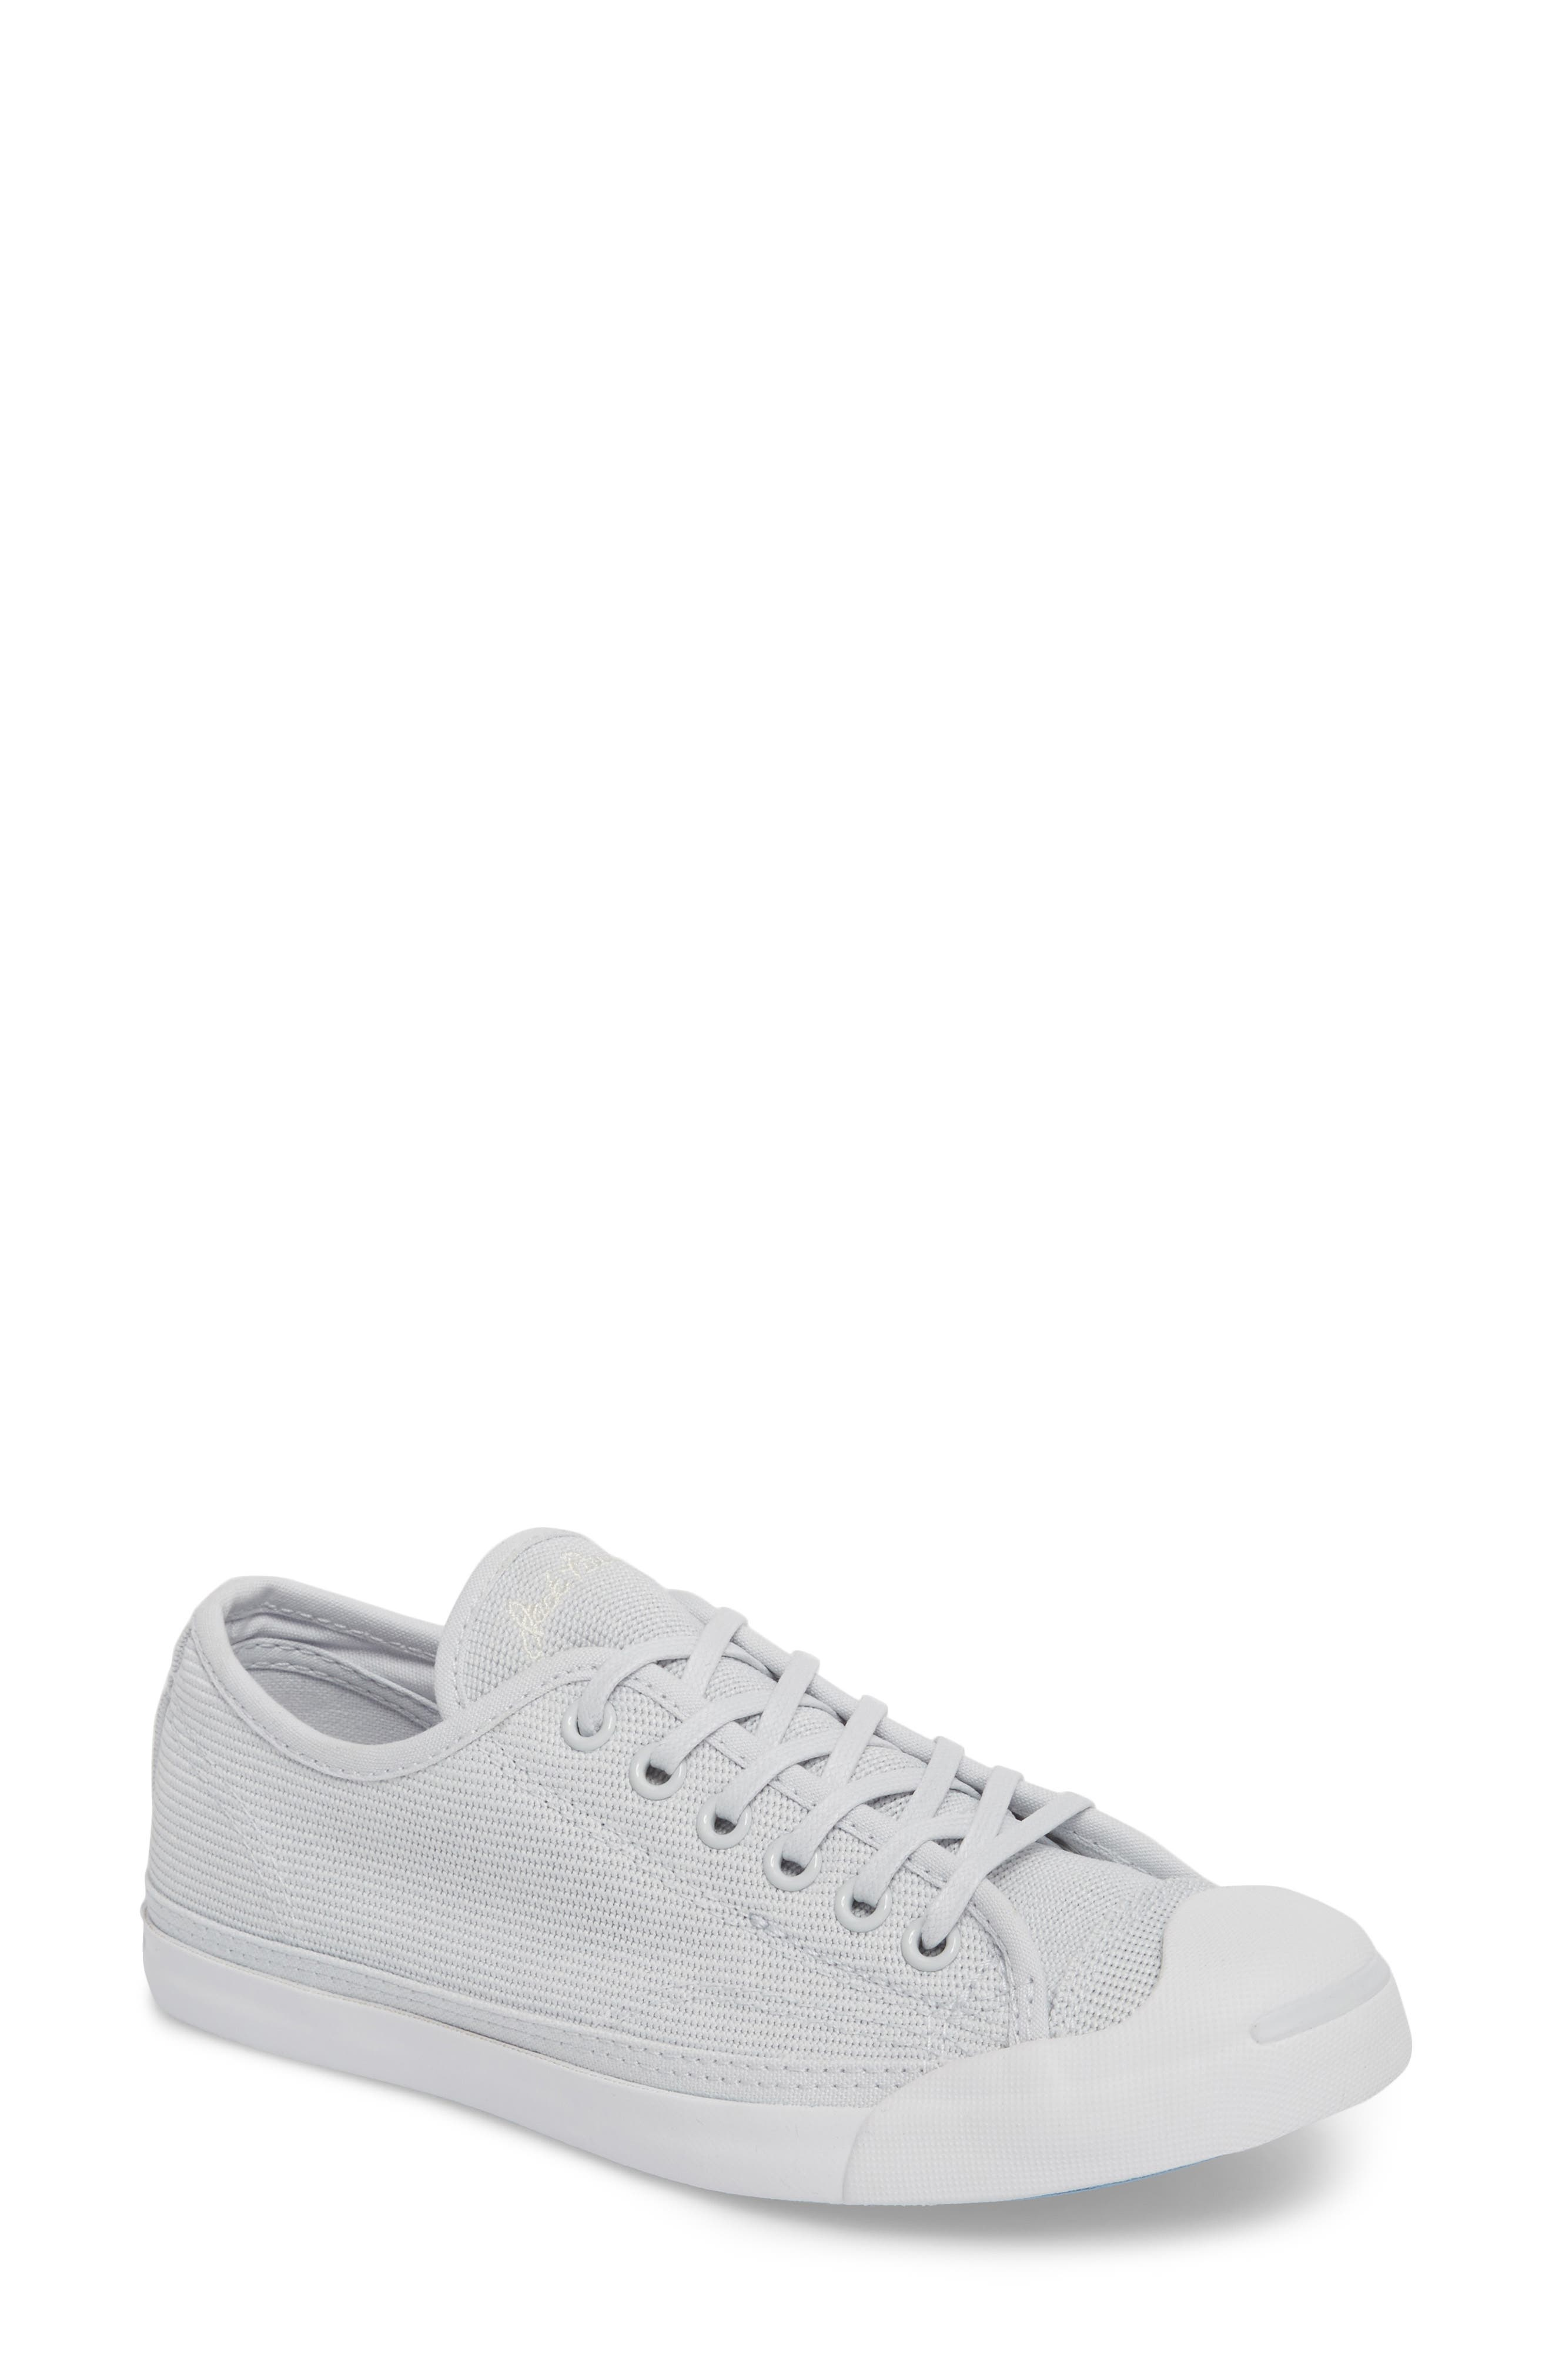 Jack Purcell Low Top Sneaker,                             Main thumbnail 1, color,                             Pure Platinum